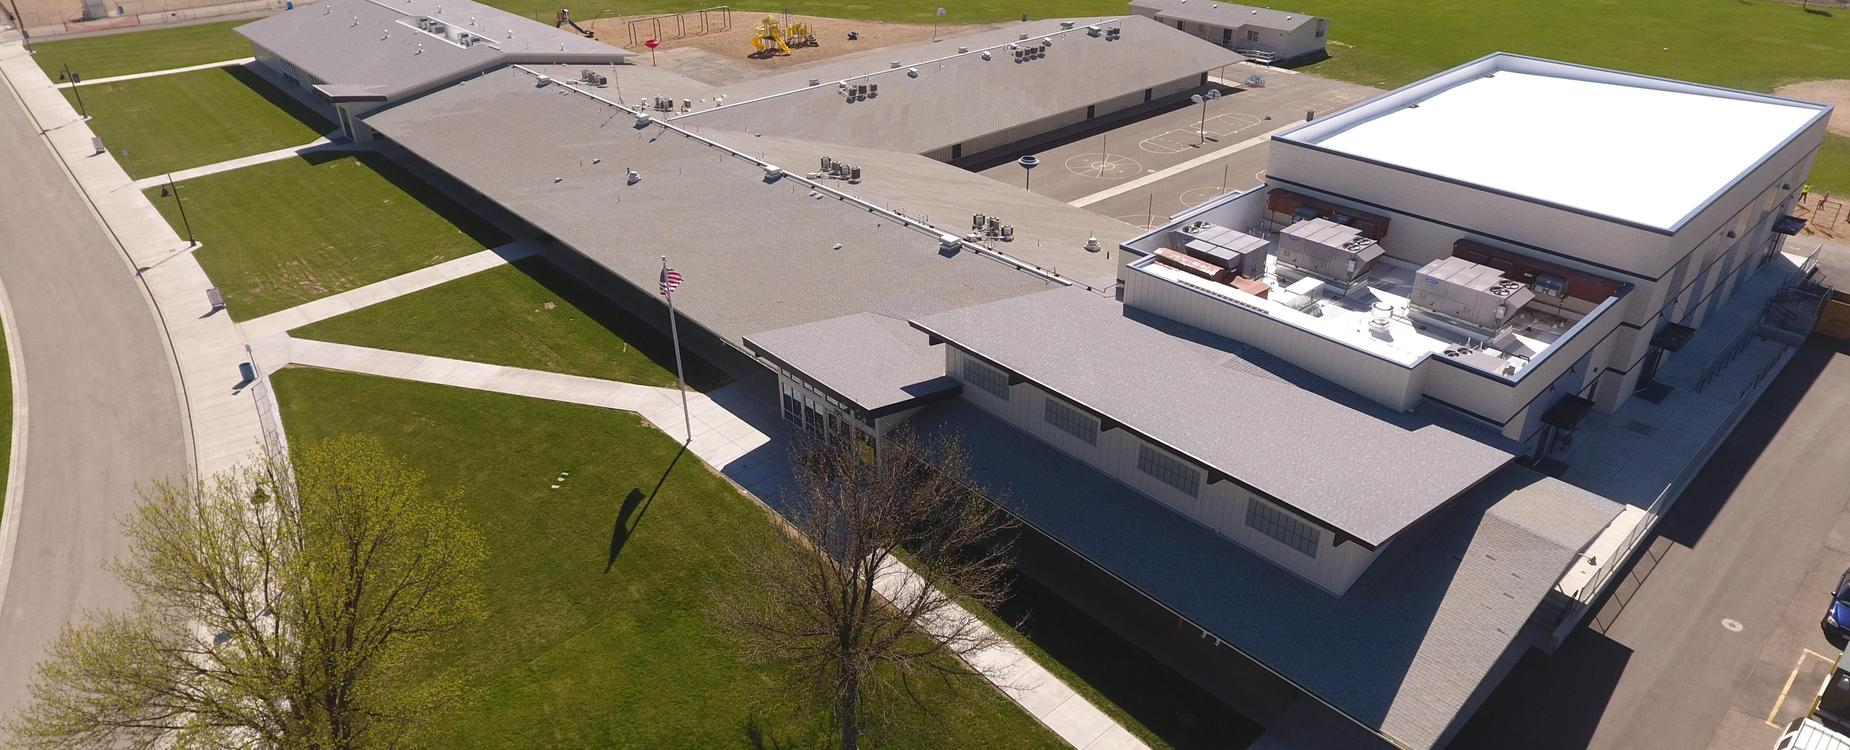 New Plymouth Elementary School aerial view 2